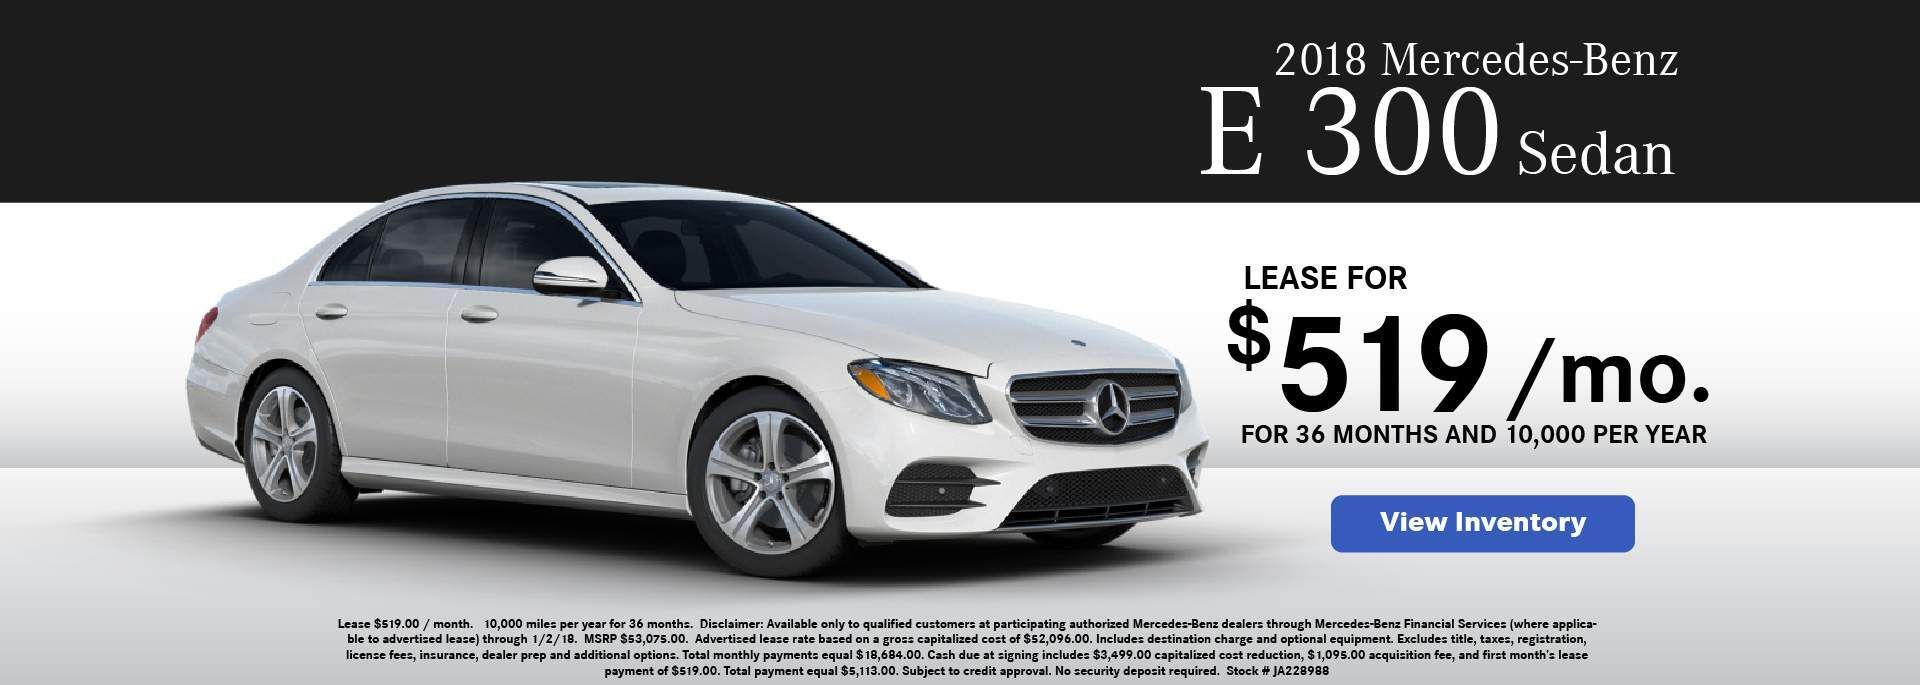 Mercedes cla lease deals miami lamoureph blog for Mercedes benz lease incentives